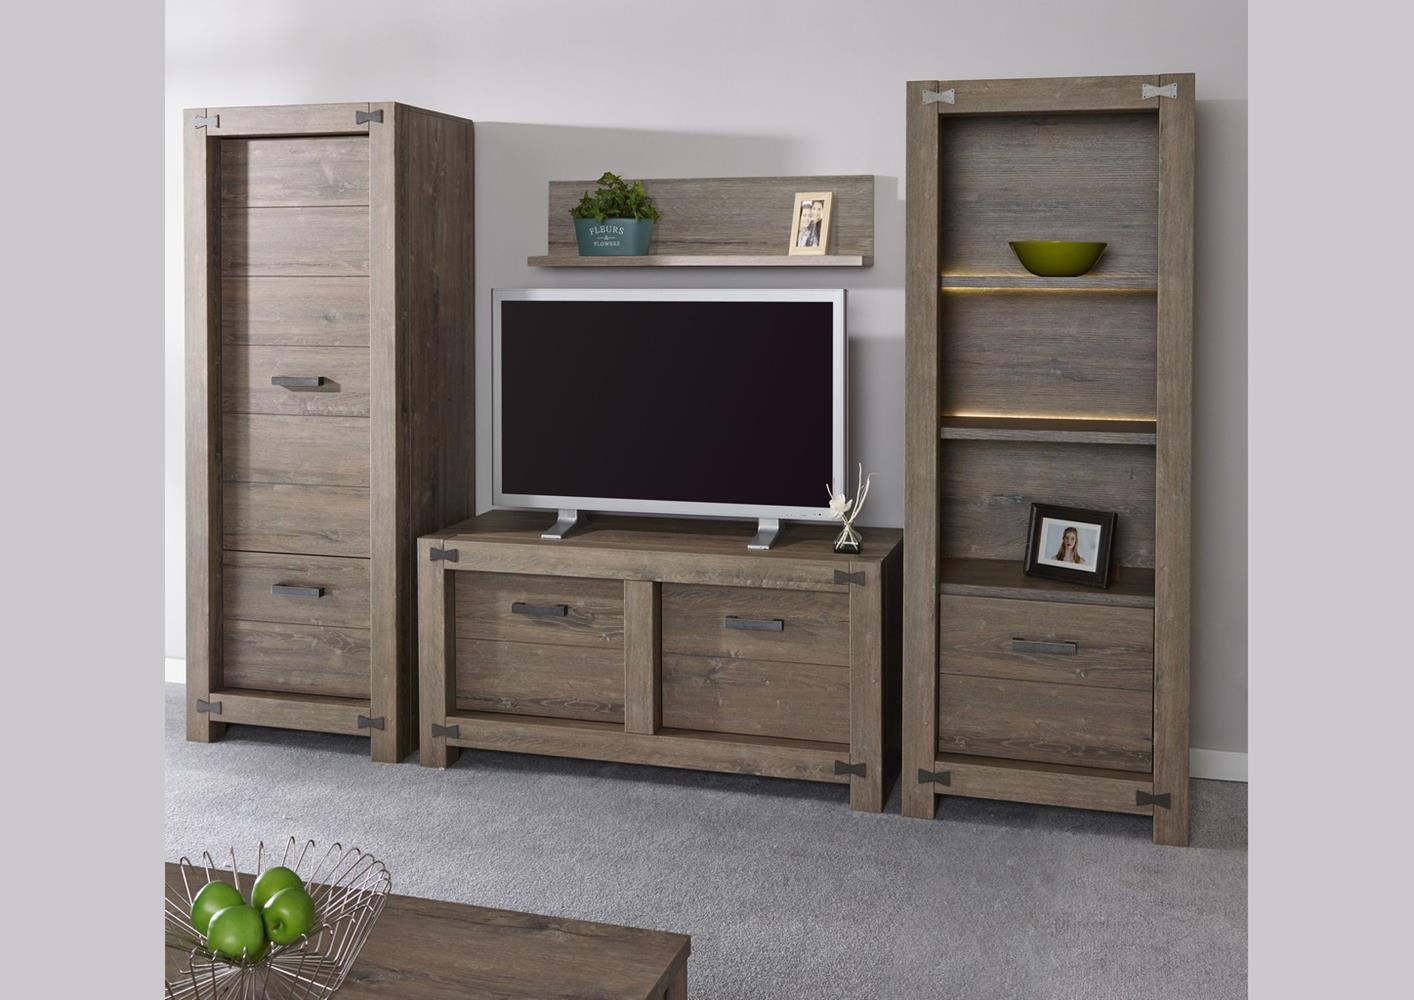 petite t l t l tout doit disparaitre tv lcd samsung le19r86bd 19 720p pas cher priceminister. Black Bedroom Furniture Sets. Home Design Ideas